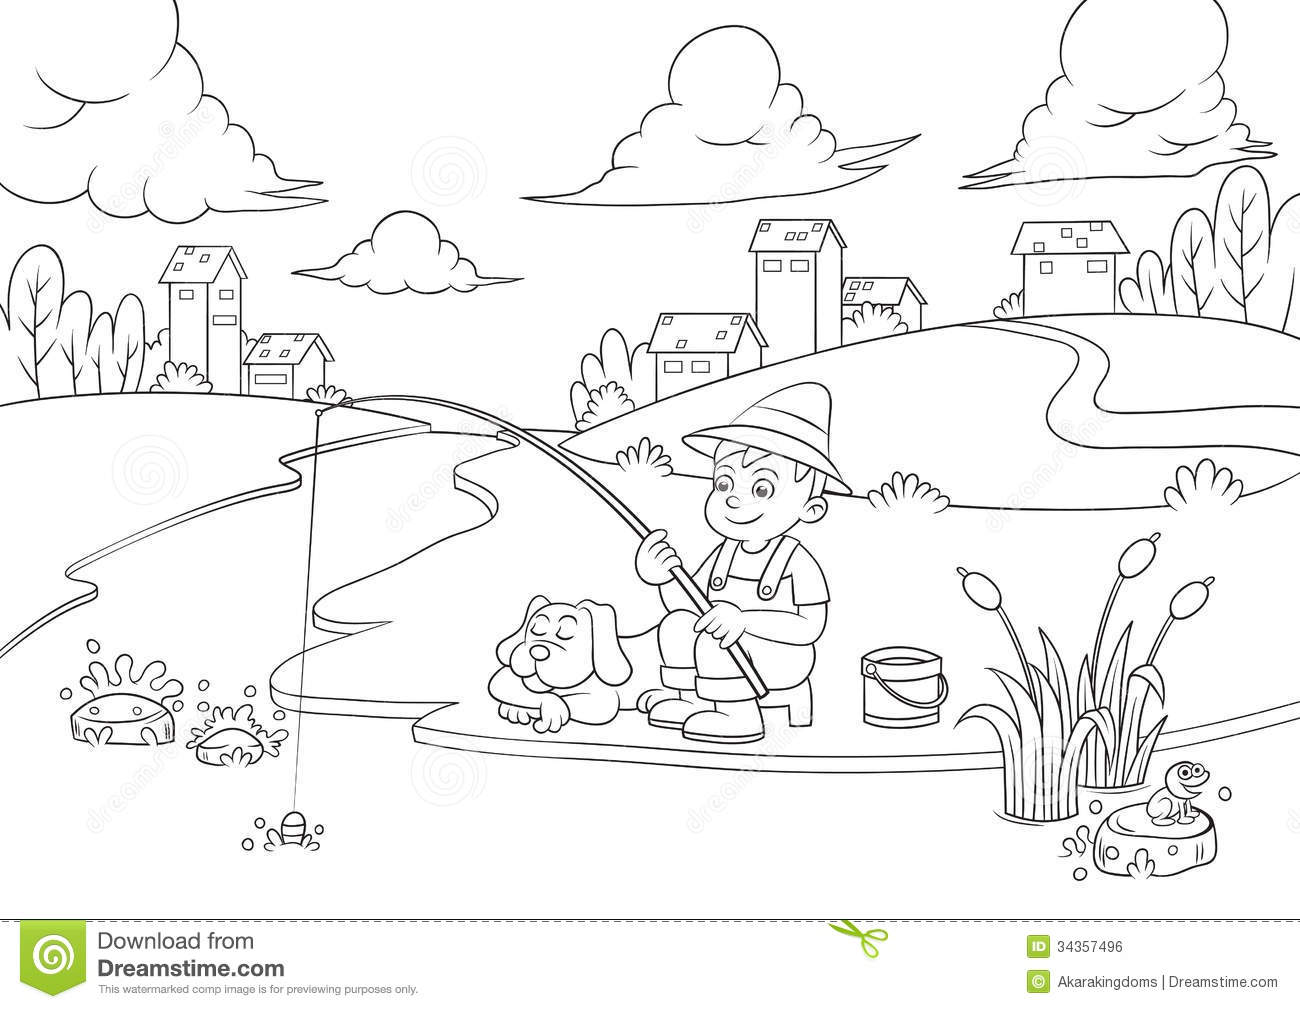 Fishing Boy For Coloring Book. Royalty Free Stock Image